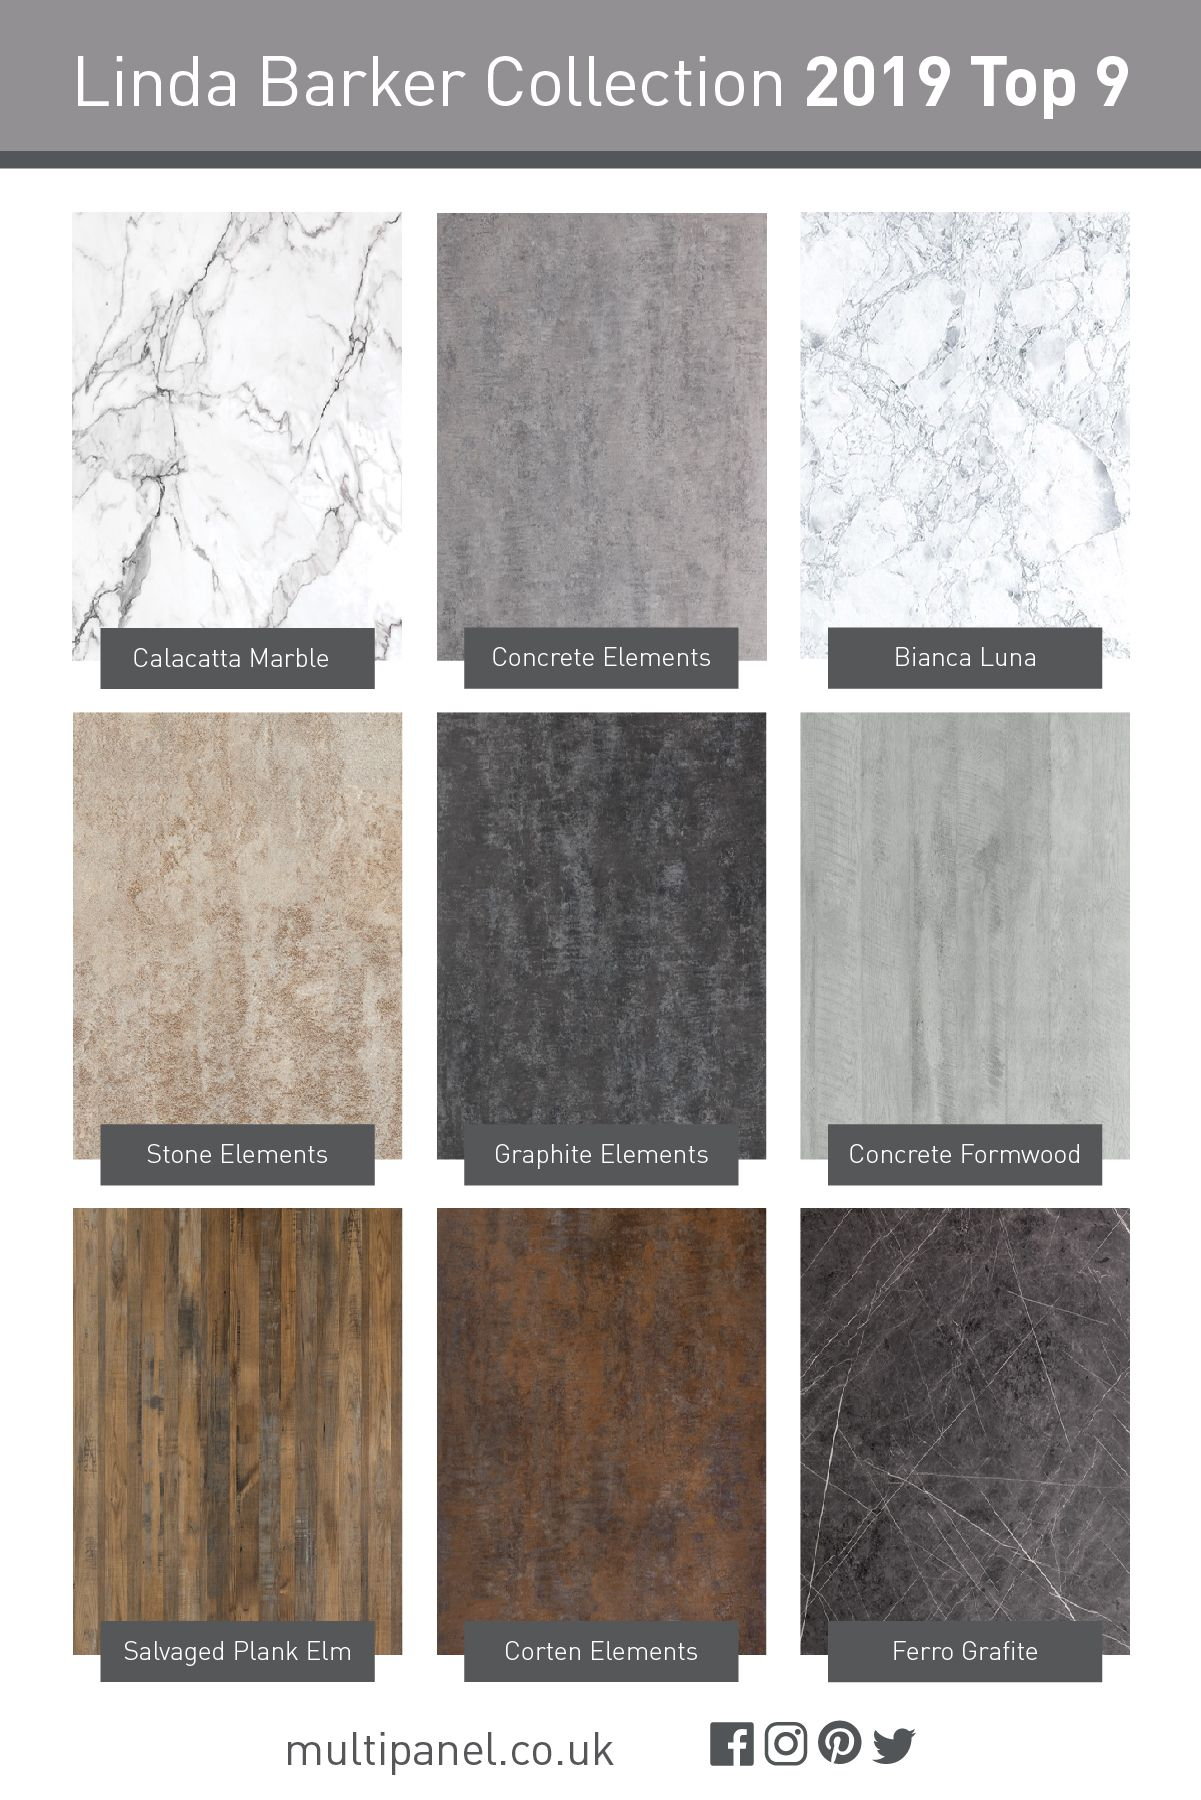 Top 9 Shower Panels From Multipanel In 2020 Shower Panels Stone Shower Walls Bathroom Wall Panels